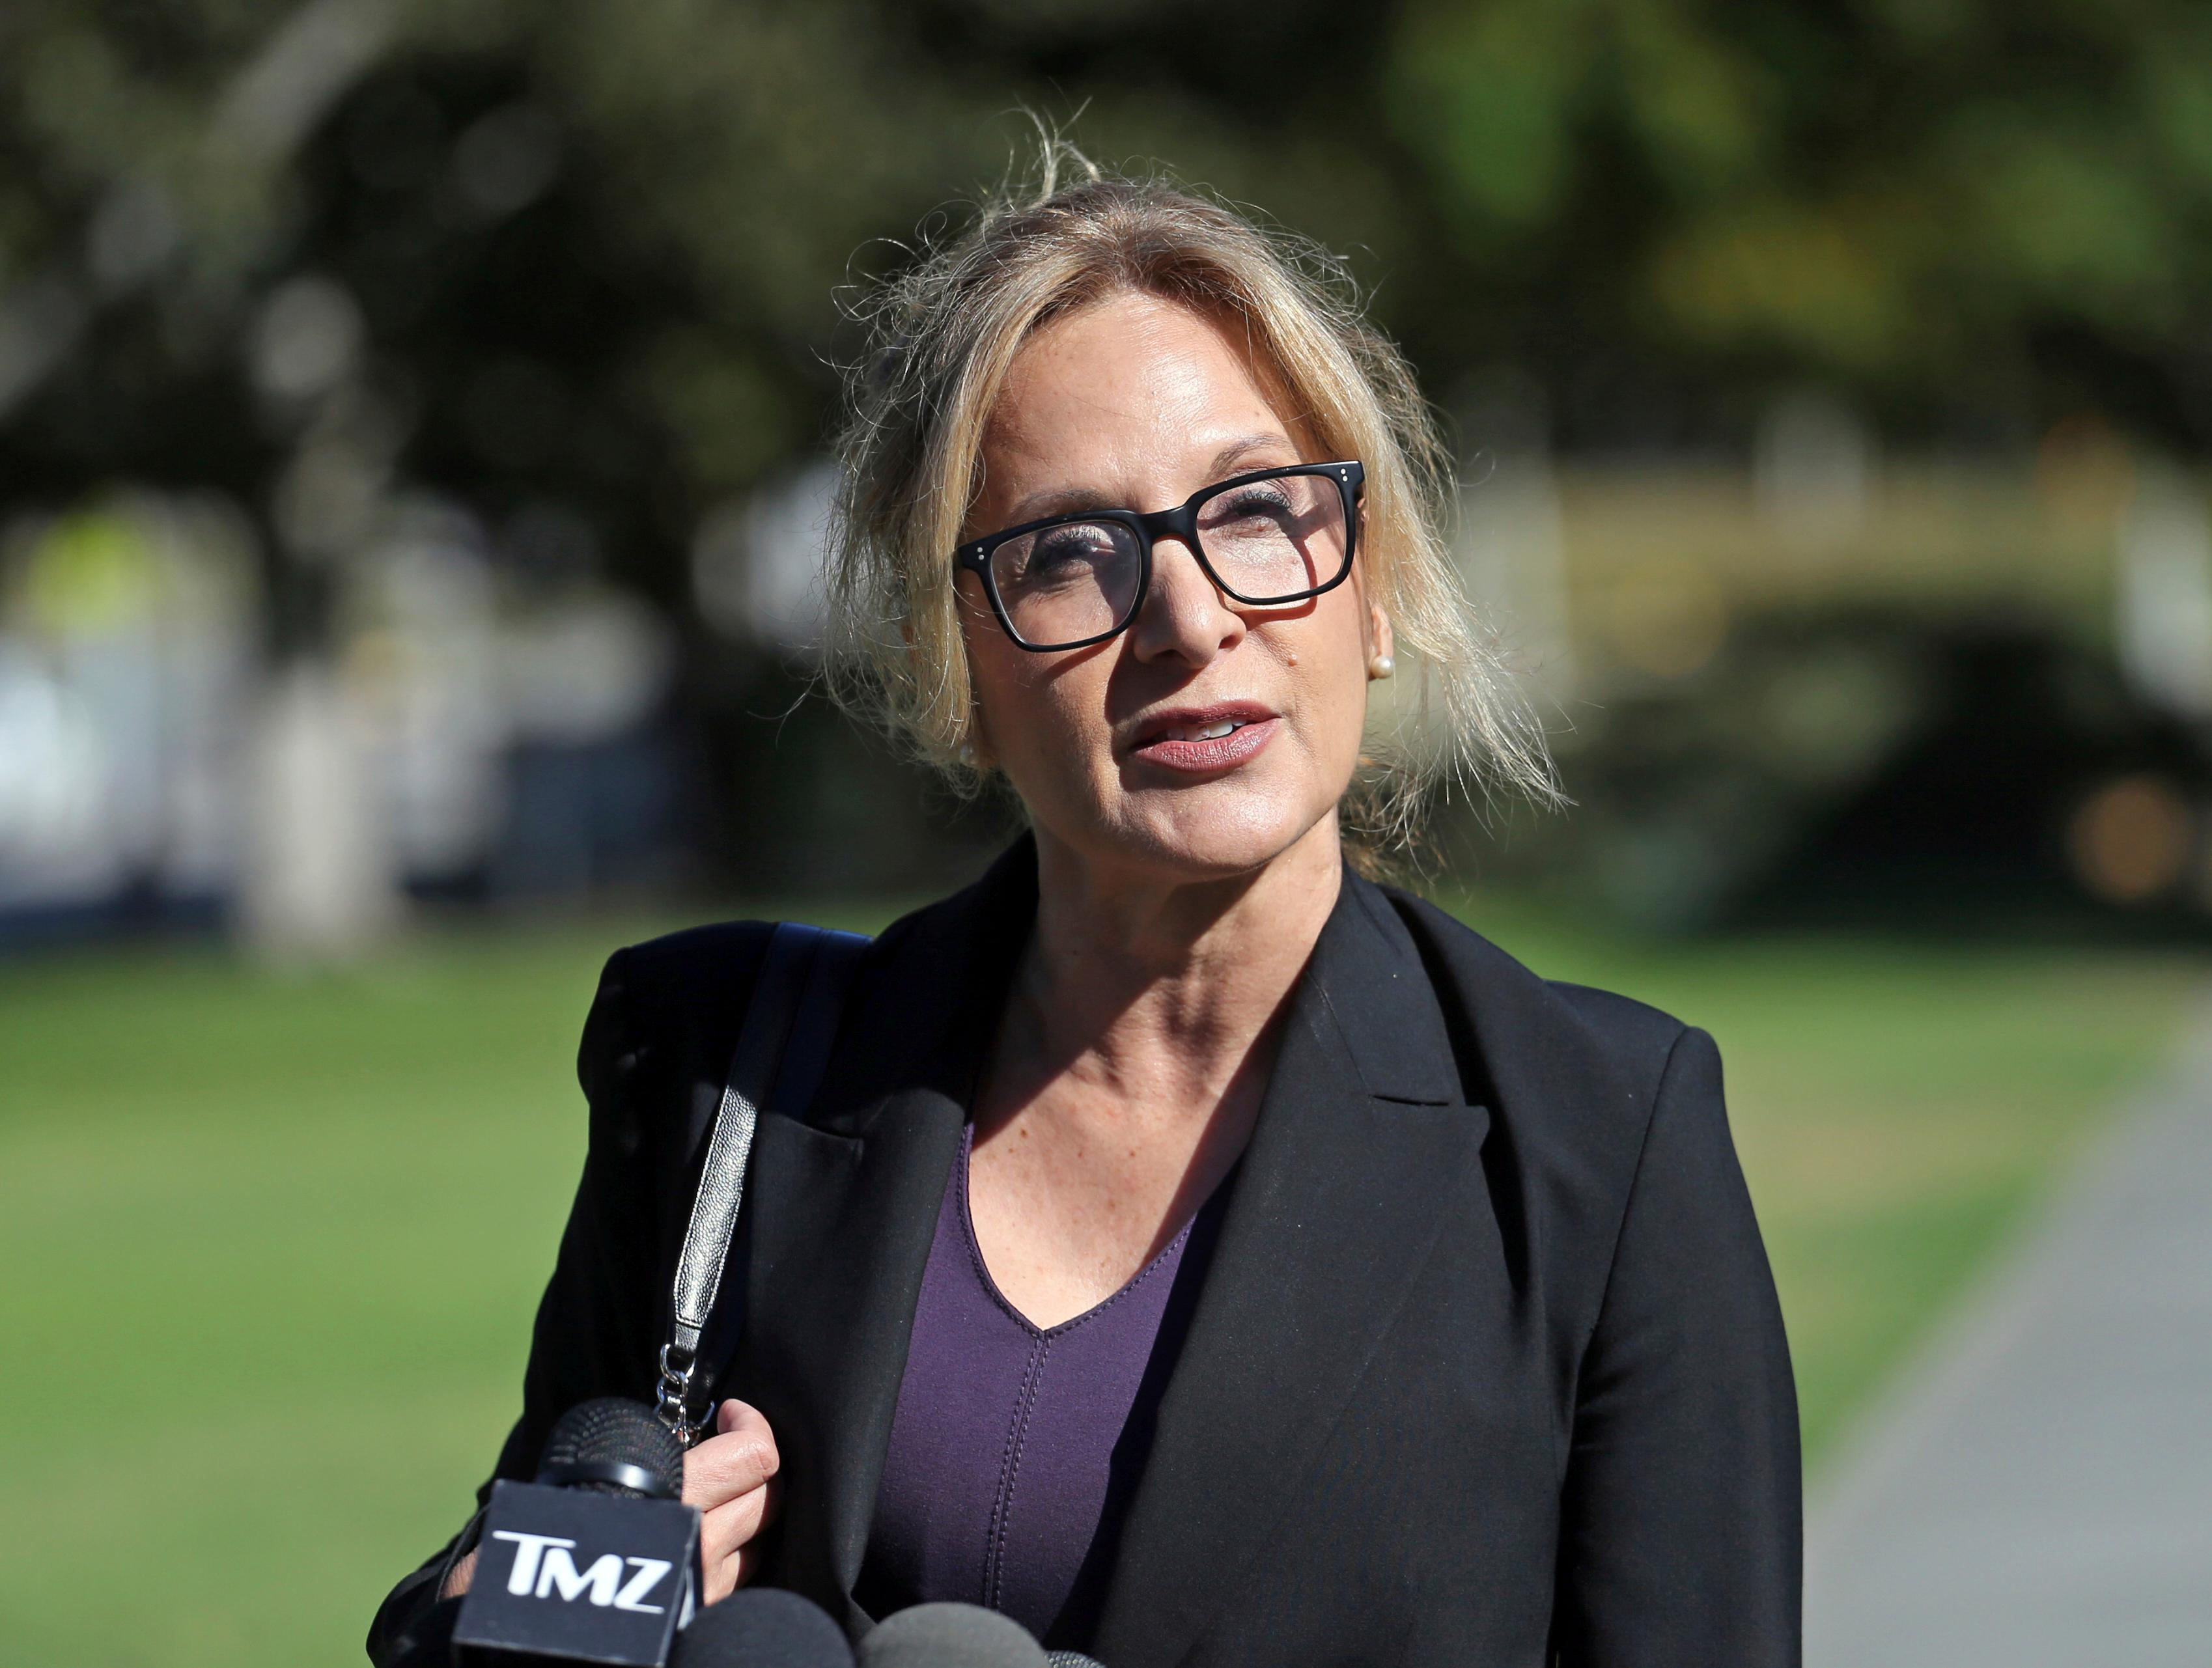 Angela Agrusa, attorney for entertainer Bill Cosby, who is accused of sexual assault by Judy Huth at the Playboy Mansion more than 40 years ago, speaks outside Los Angeles Superior Court after a hearing, Tuesday, June 27, 2017, in Santa Monica, Calif. The purpose of the hearing was to set a trial date in the civil case. (AP Photo/Reed Saxon)